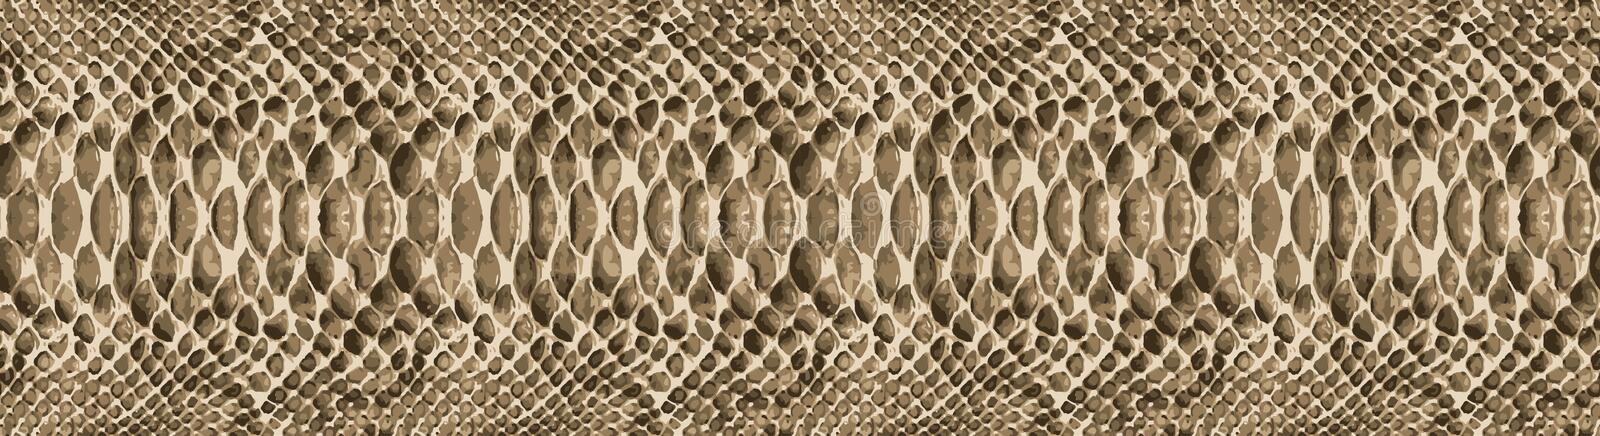 Snake skin pattern texture repeating seamless. Vector. Texture snake. Fashionable print. fashionable and stylish background. Texture for your design